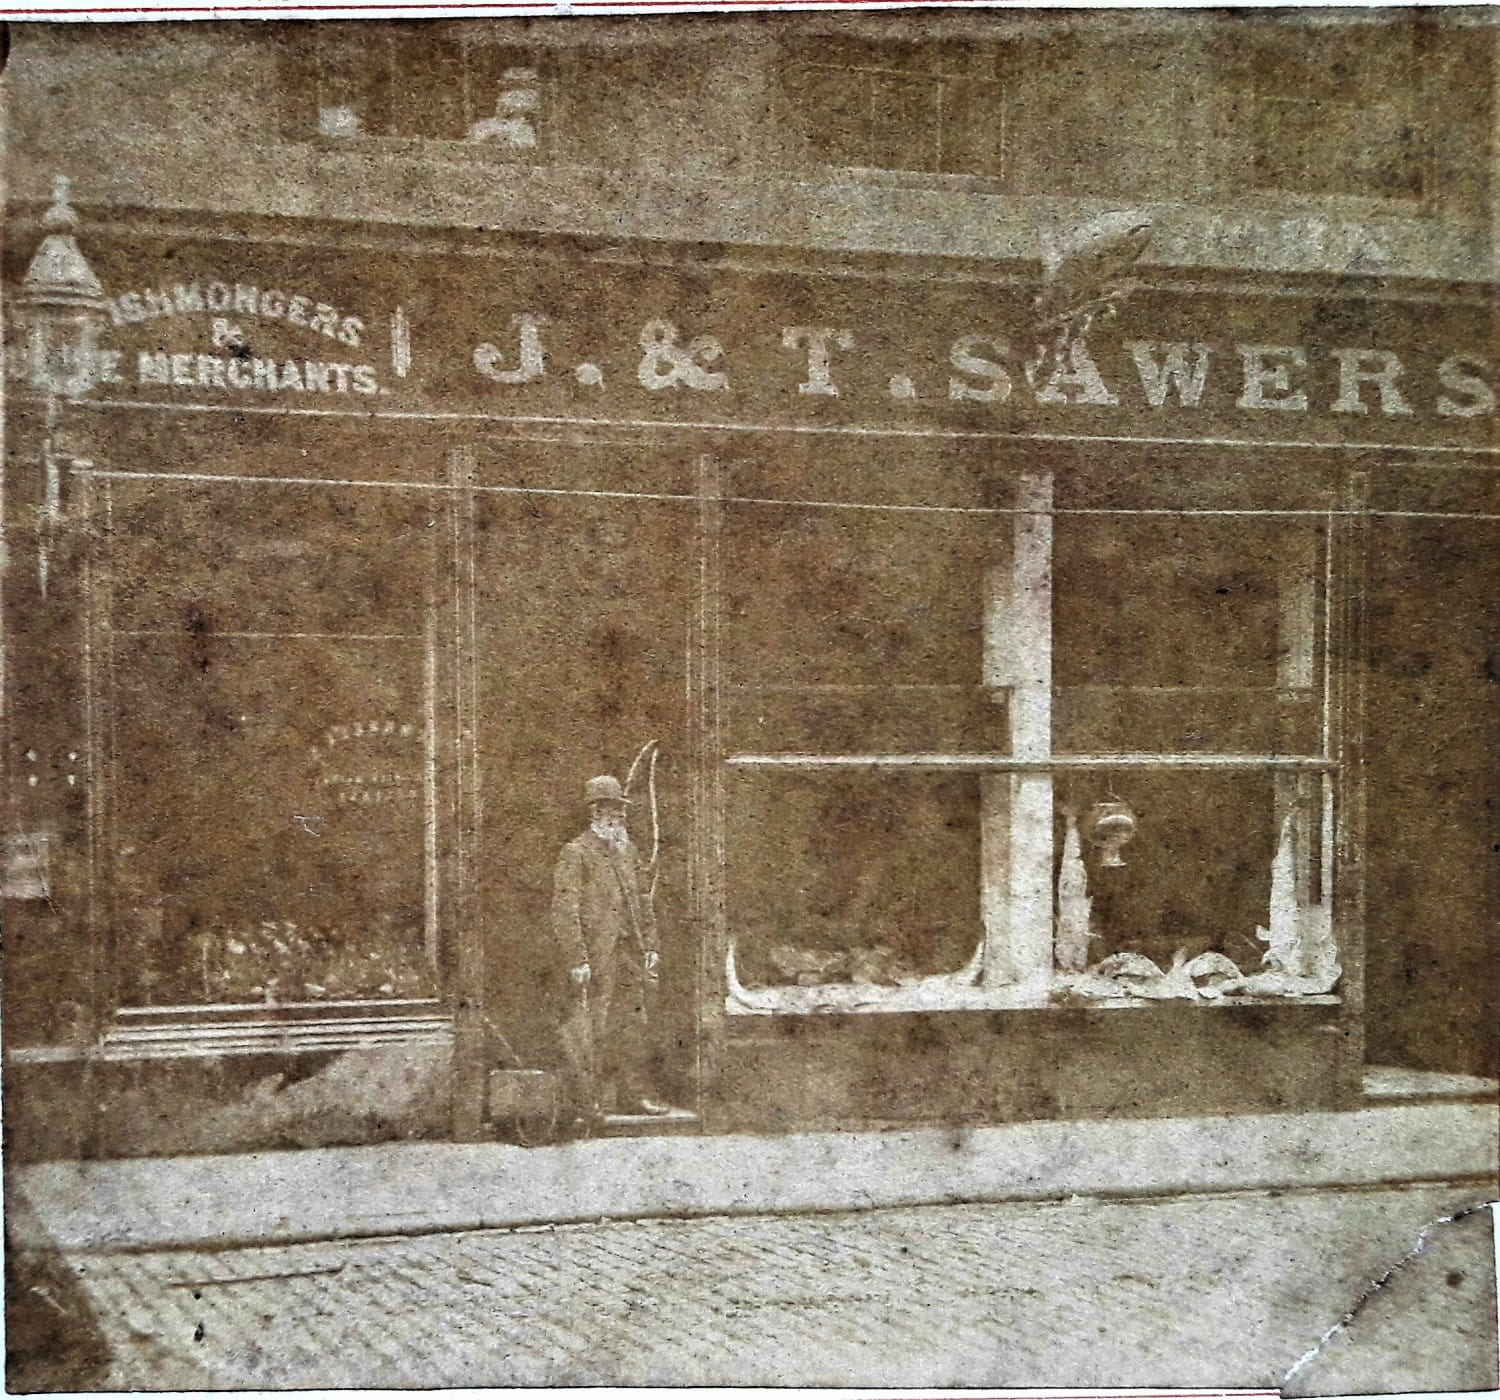 The Howard Street premises in 1890, complete with its hanging fish sign (Picture: John Sawers)